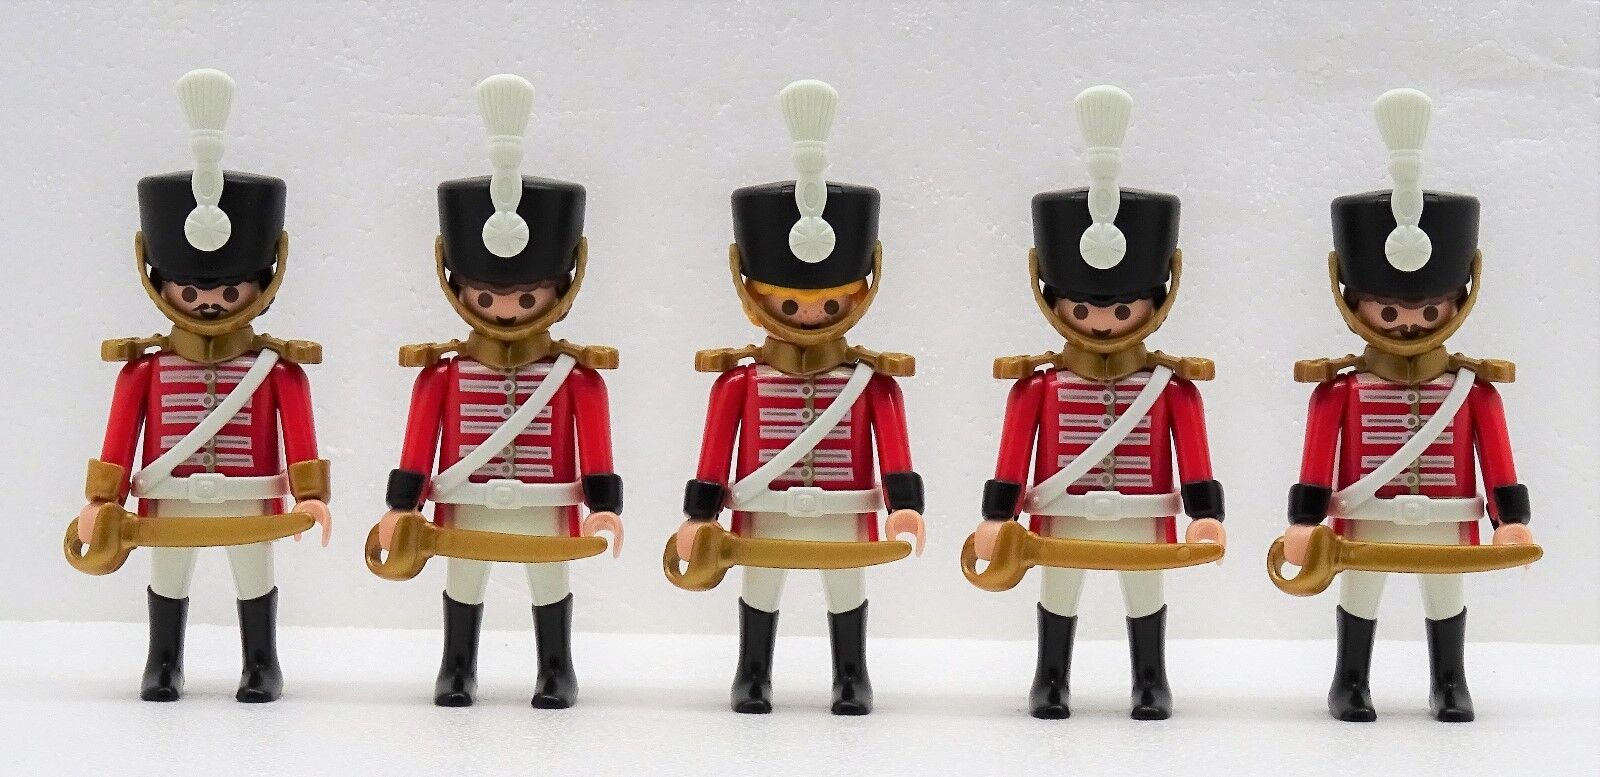 4 x Red Coats Coats Coats Husar + Officer Playmobil to Hussard Guard Soldier vs.Napoleon 02 44028b